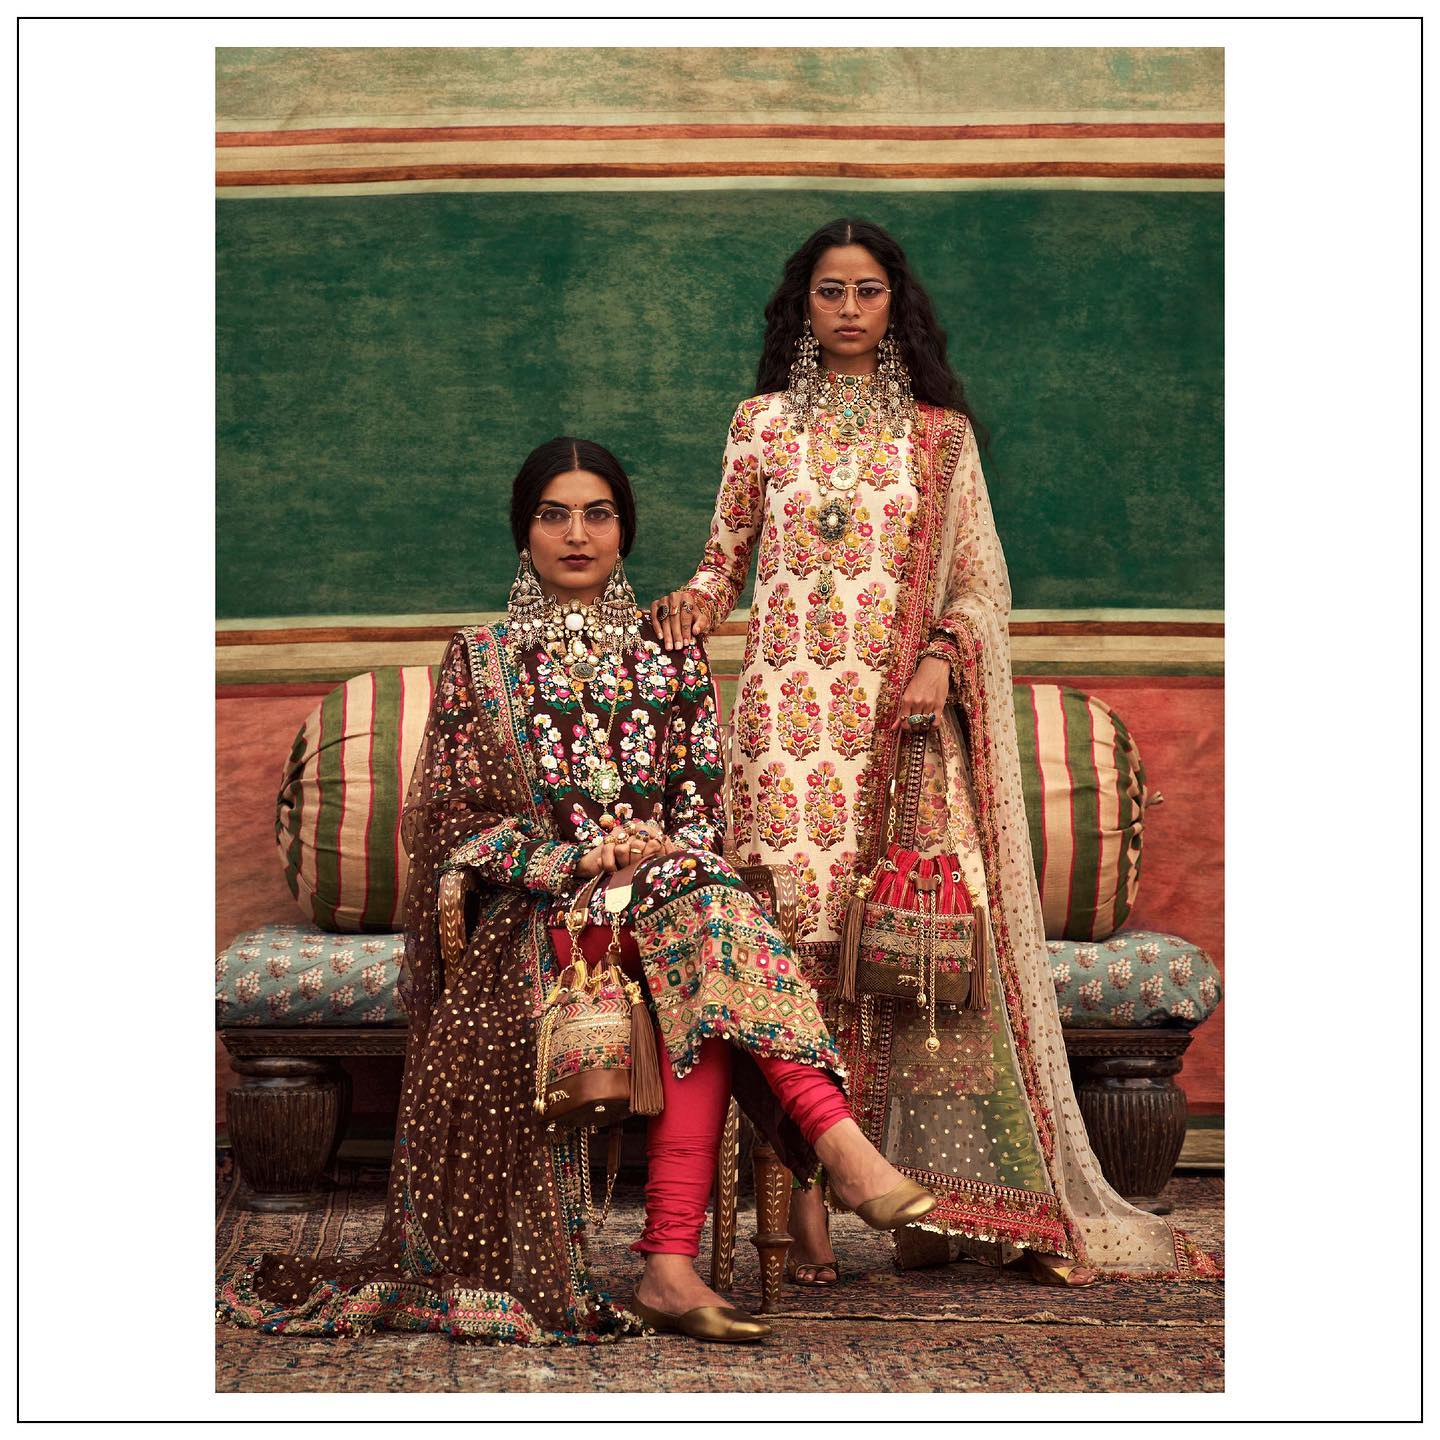 The Sabyasachi 2021 Collection. Beautiful Sabyasachi kurtis with heavy hand embroidery work.   Womenswear  jewellery Sabyasachi jewelry and accessories Sabyasachi accessories.  For all product related queries  please email at customerservice@sabyasachi.com or contact  retail stores directly. 2021-04-04